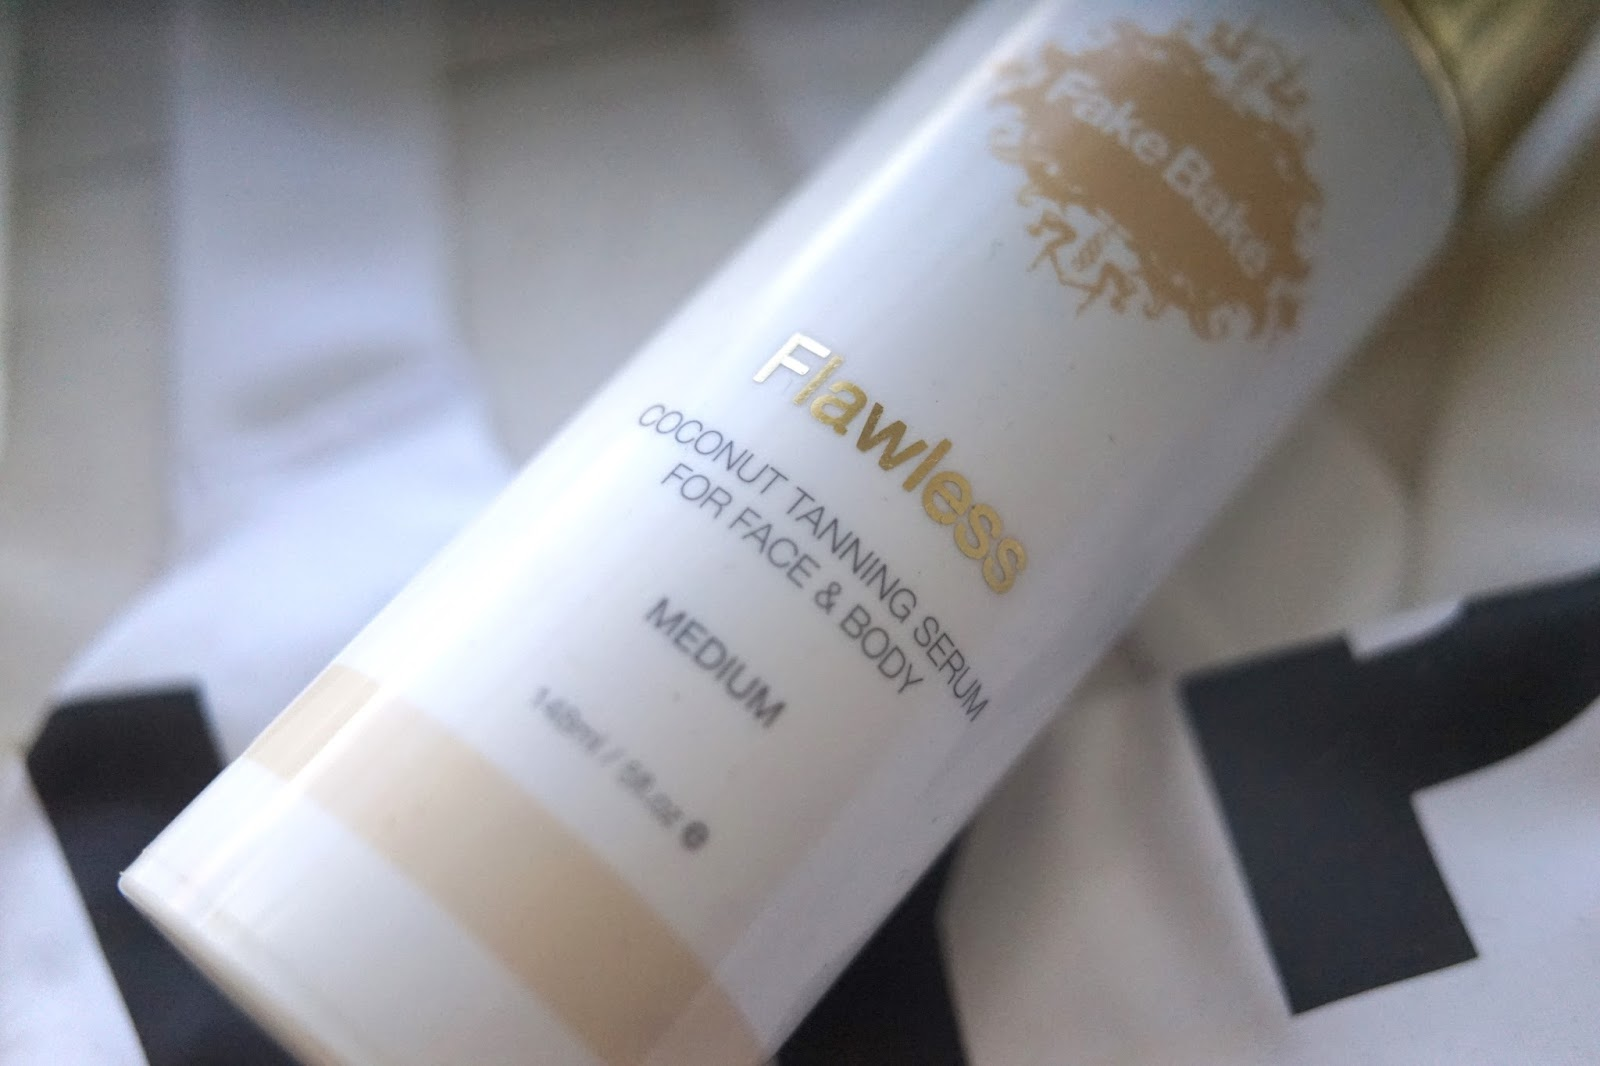 fake bake flawless tan coconut tanning serum for body and face